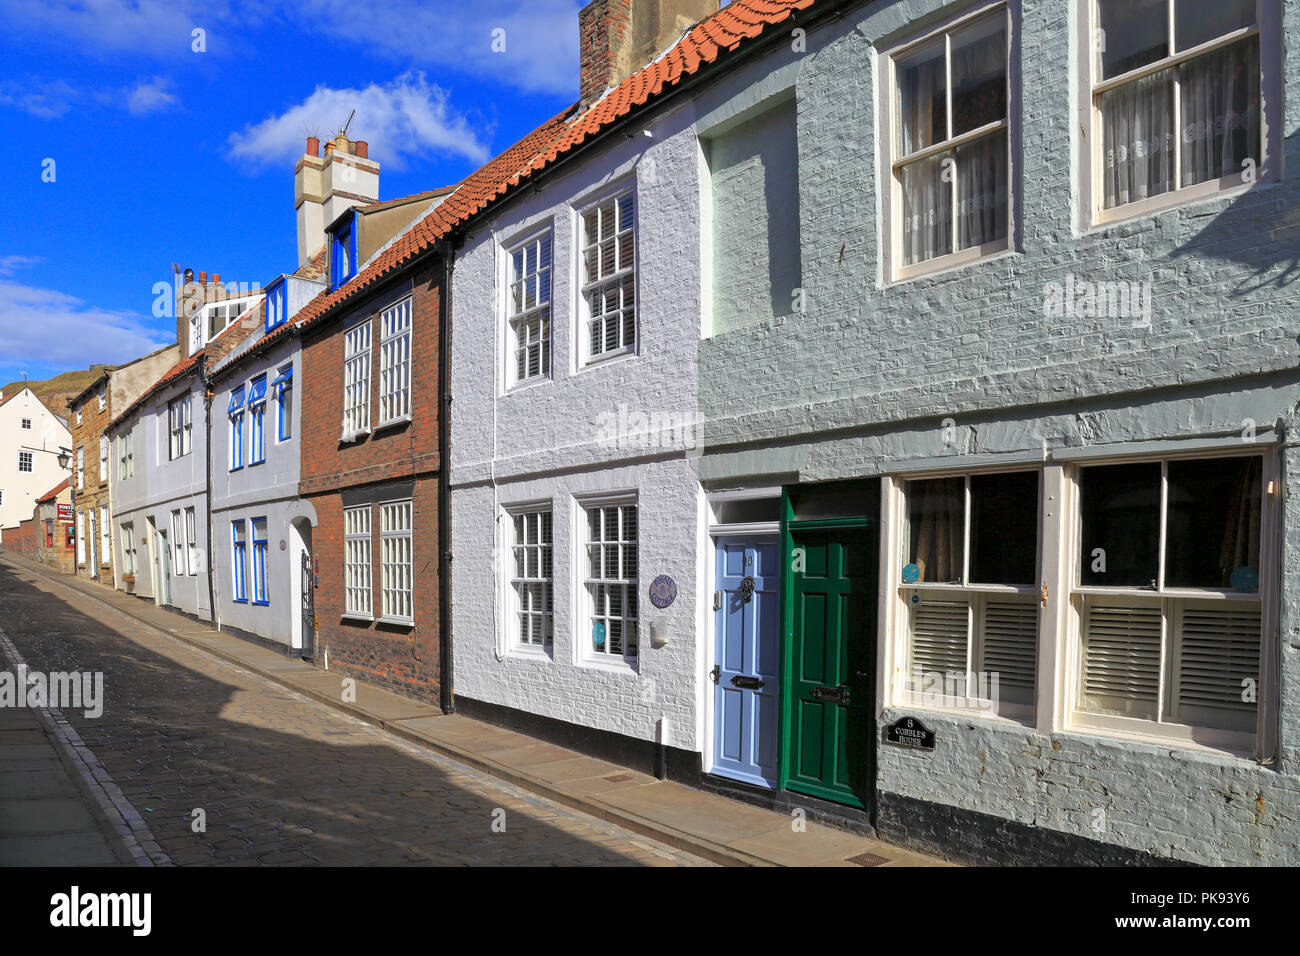 Wondrous Holiday Cottages On Cobbled Henrietta Street Whitby North Home Interior And Landscaping Oversignezvosmurscom